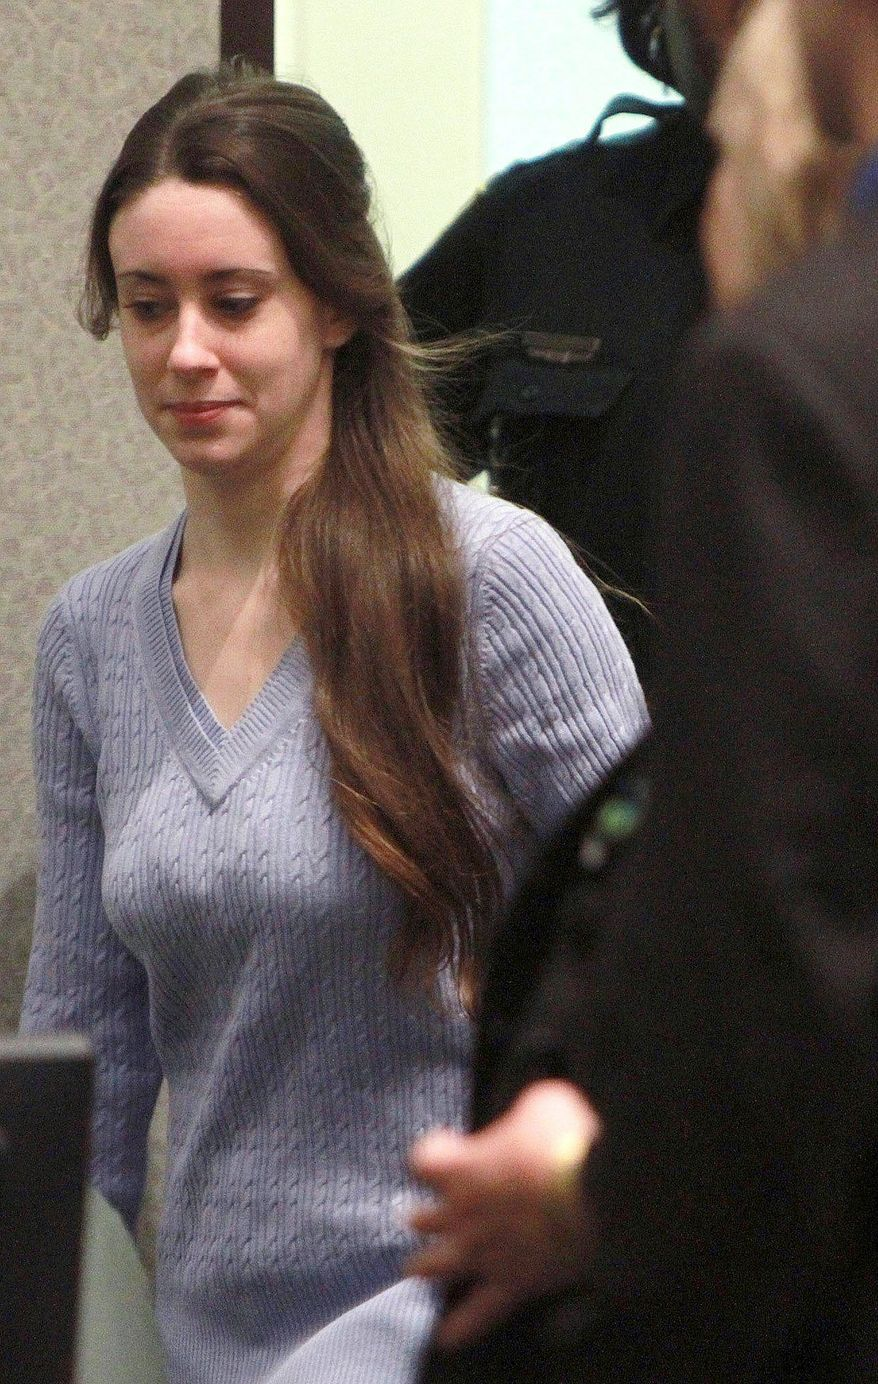 The Casey Anthony verdict gave HLN its biggest audience ever with 4.58 million people watching between 2 and 3 p.m. Tuesday. (Associated Press)